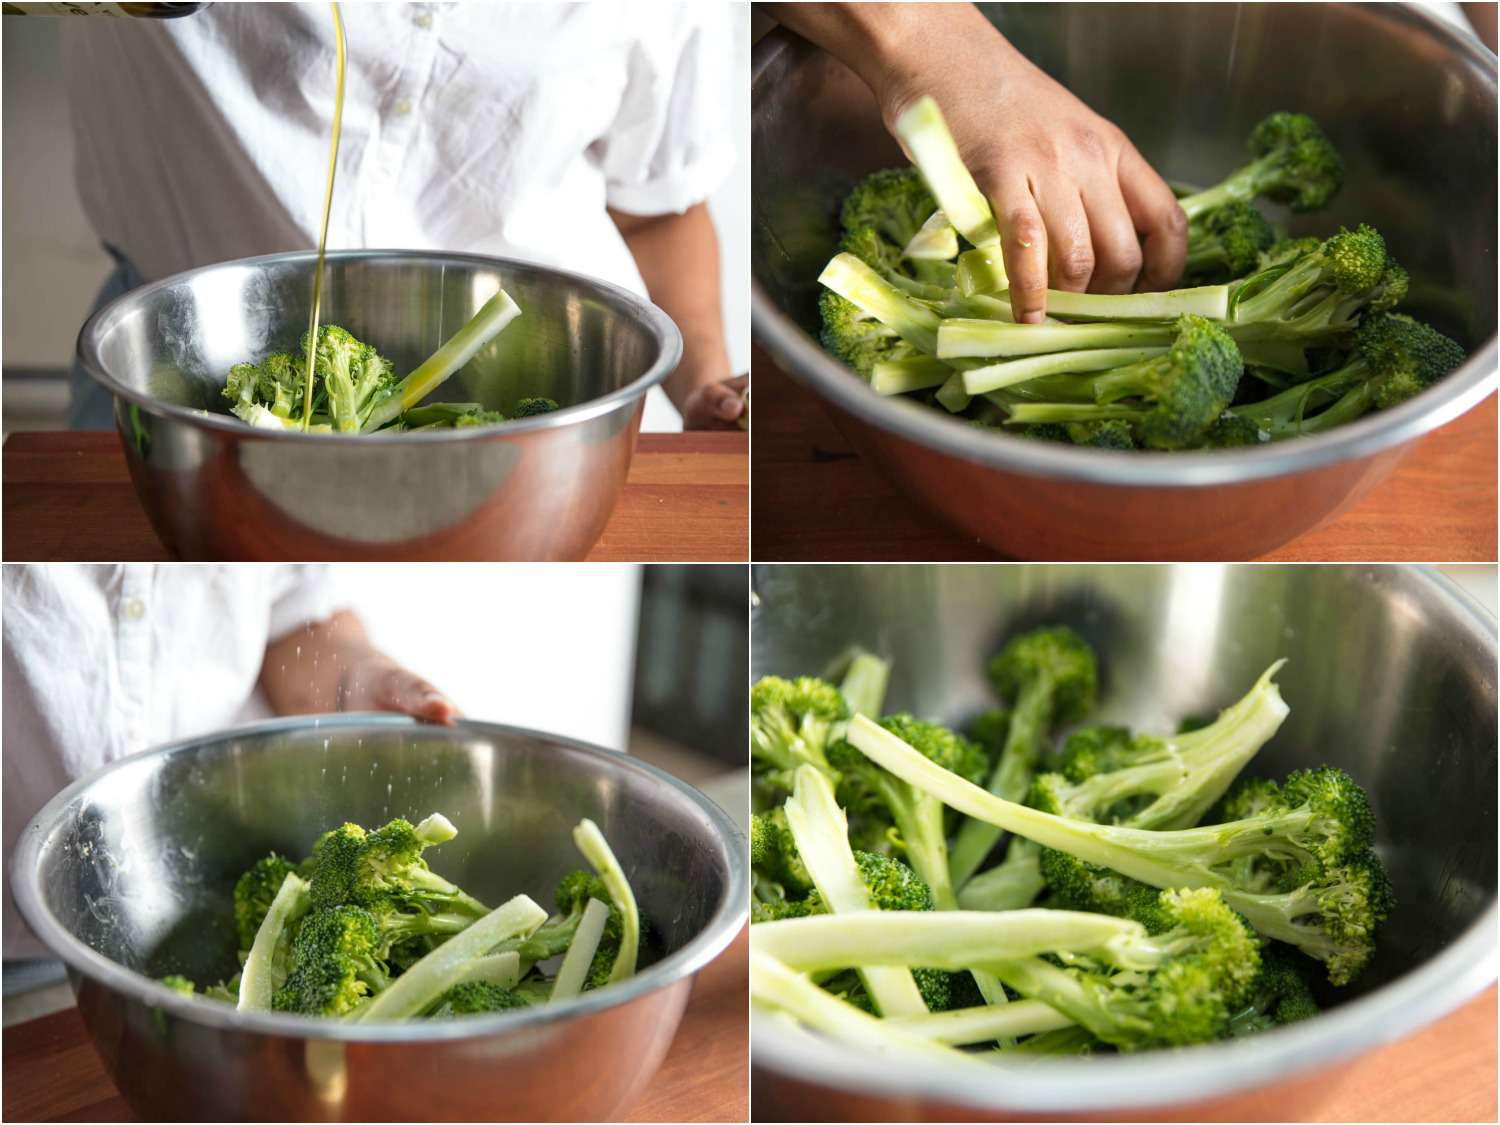 Collage of prepping broccoli for broiling: pouring olive oil into a bowl with broccoli florets, mixing with hands, finished bowl of coated broccoli